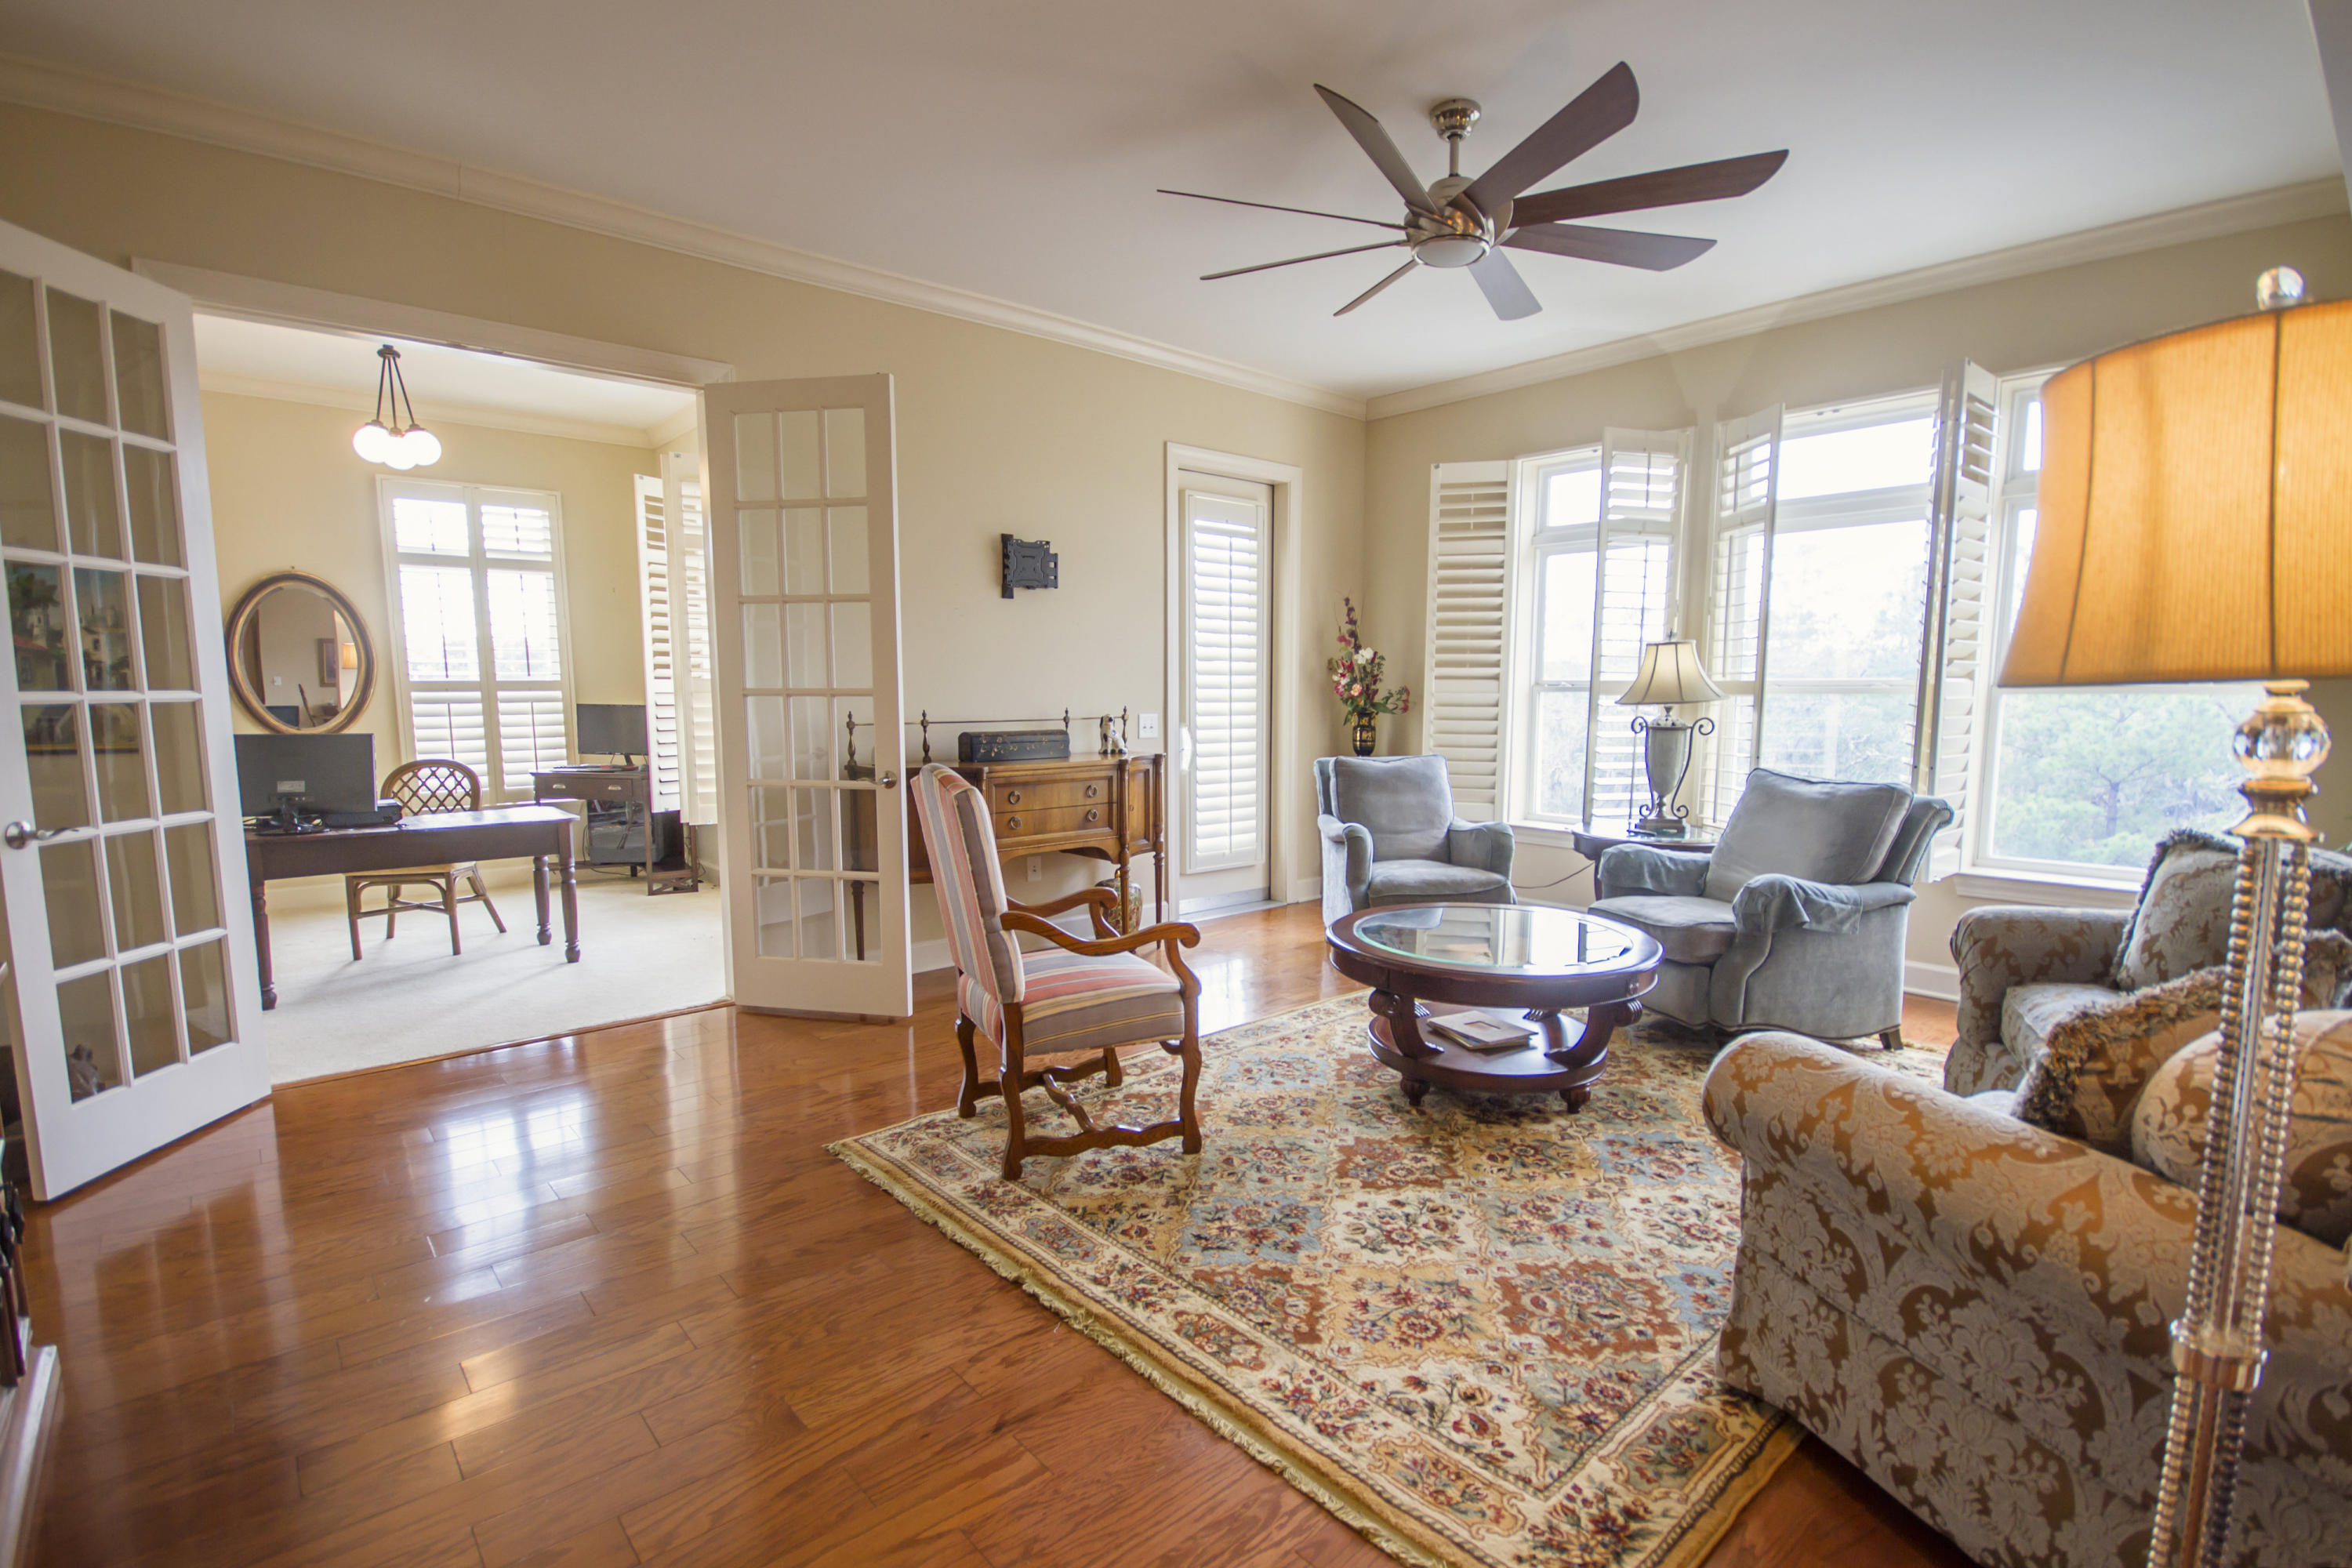 Pier View Homes For Sale - 125 Pier View, Charleston, SC - 4